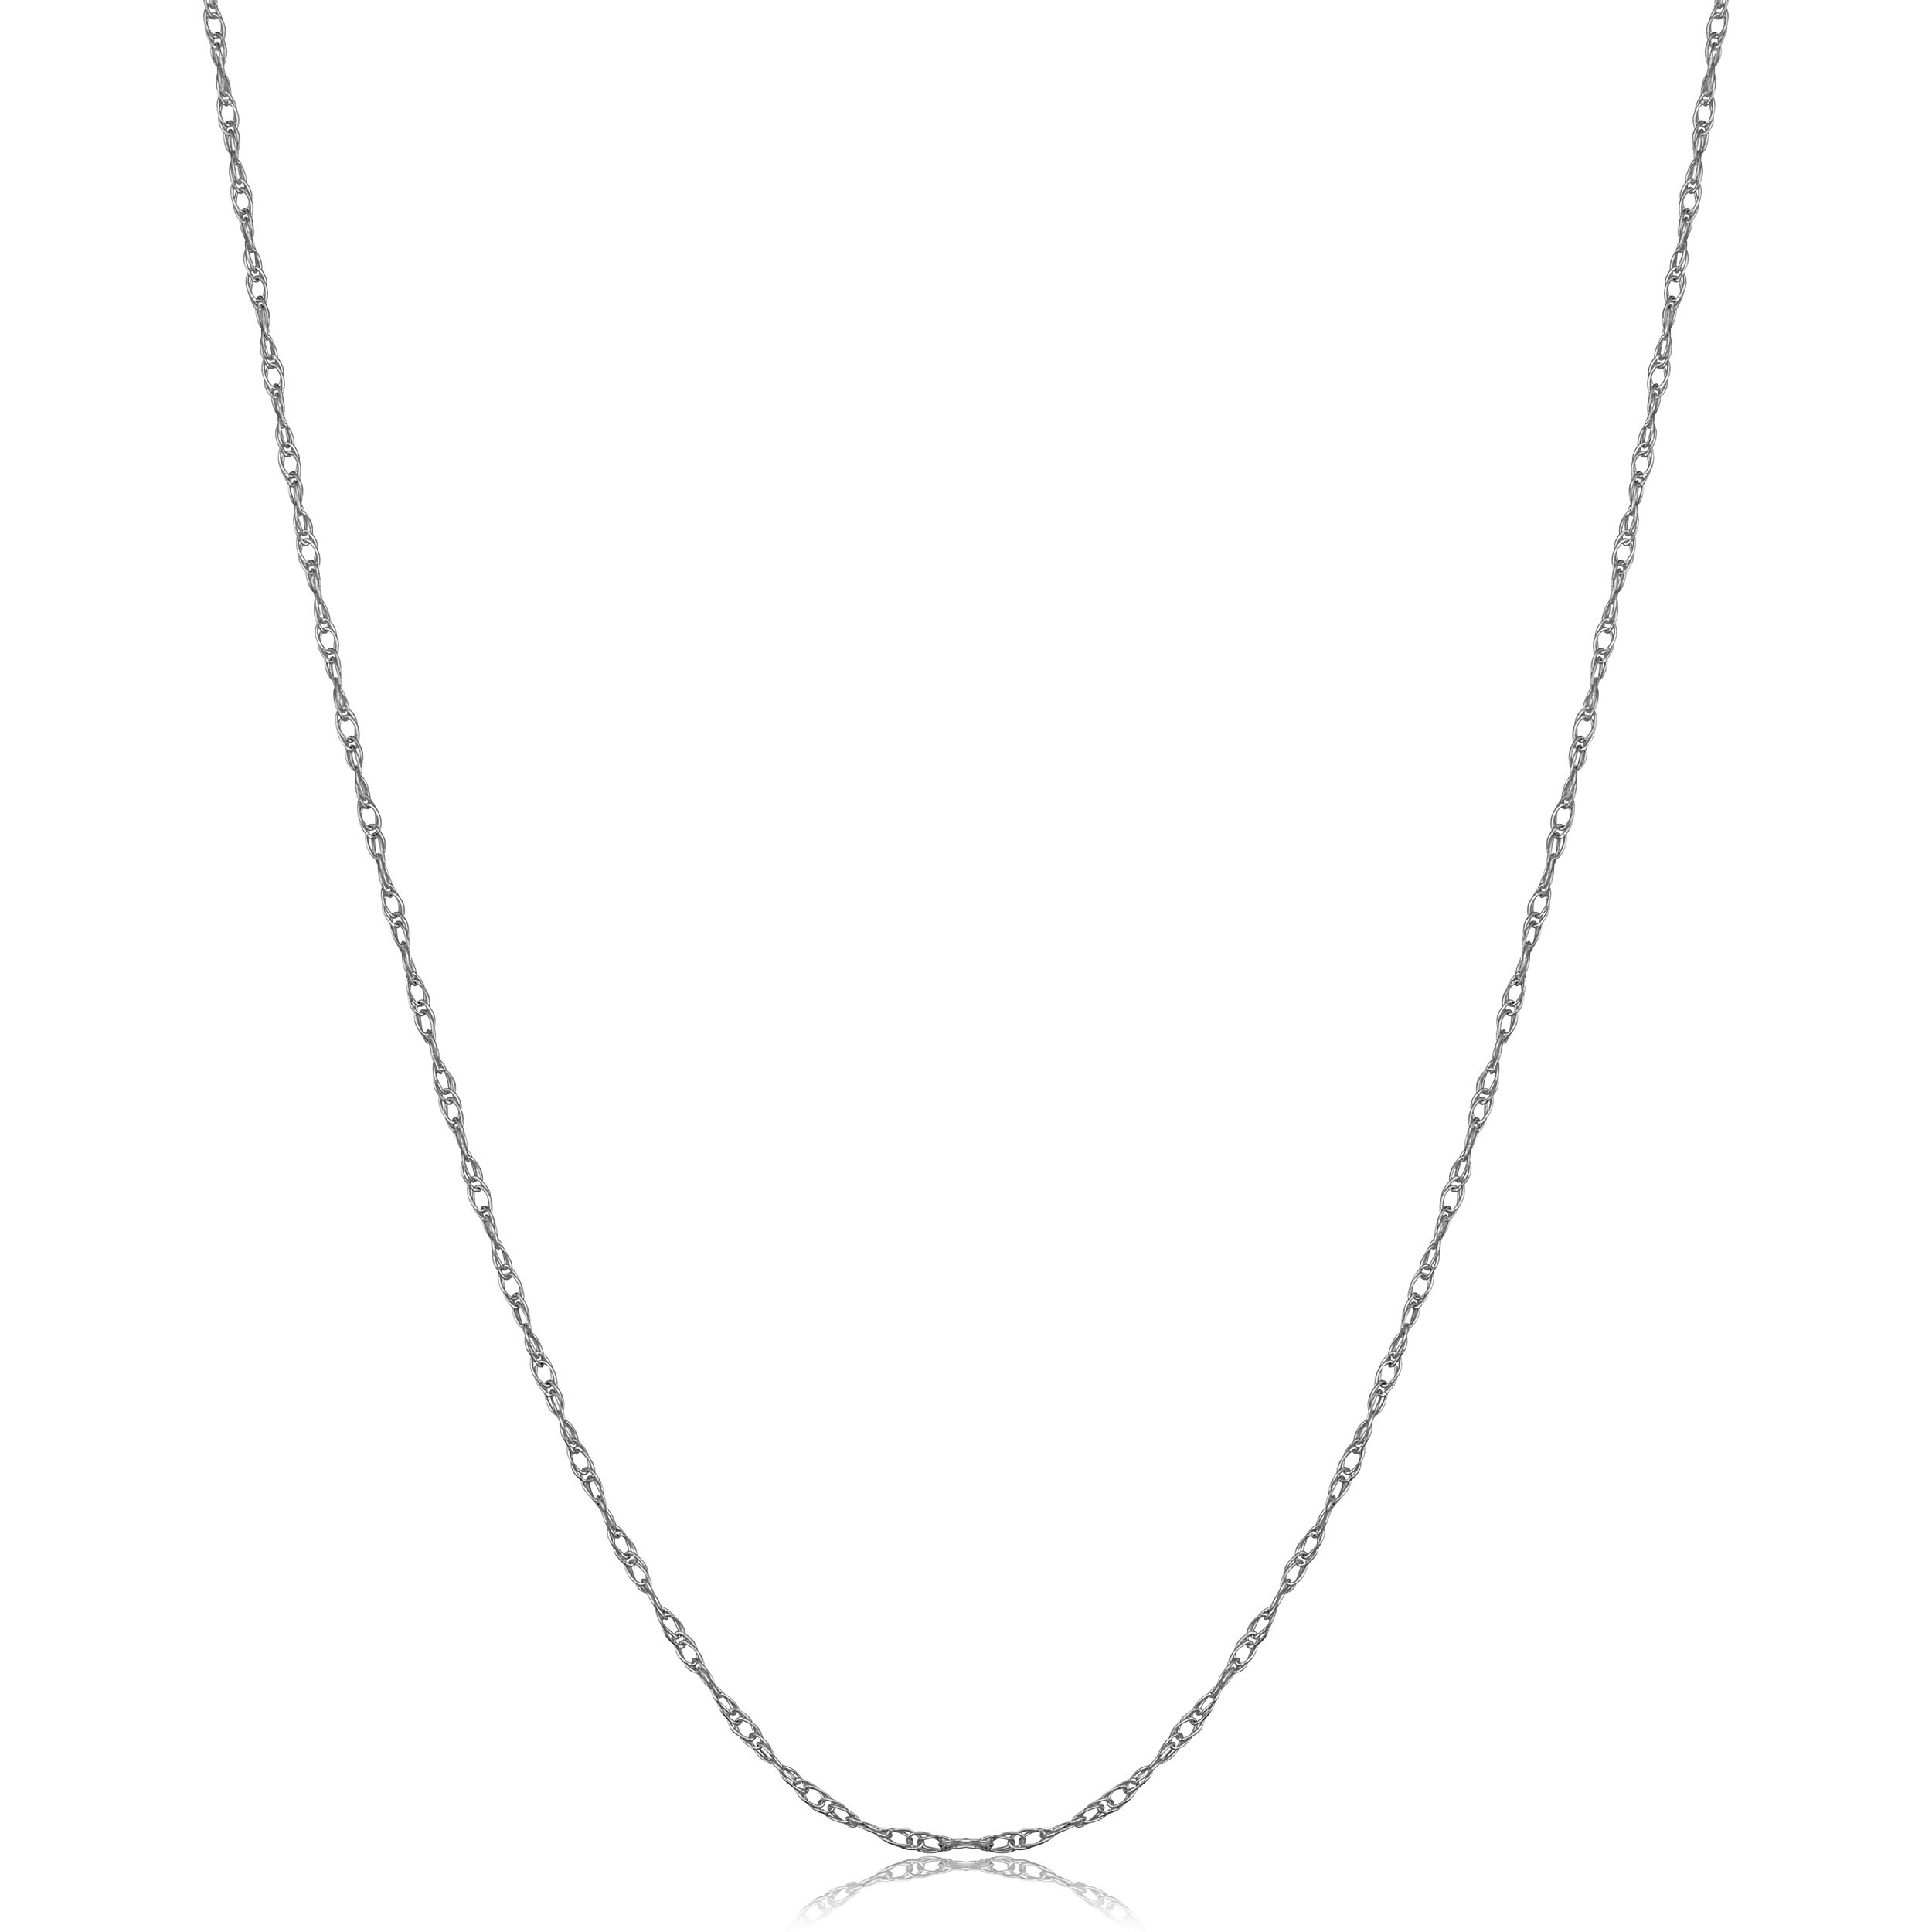 Solid 14k White Gold Thin Rope Chain Necklace (0.7mm, 14 inch)